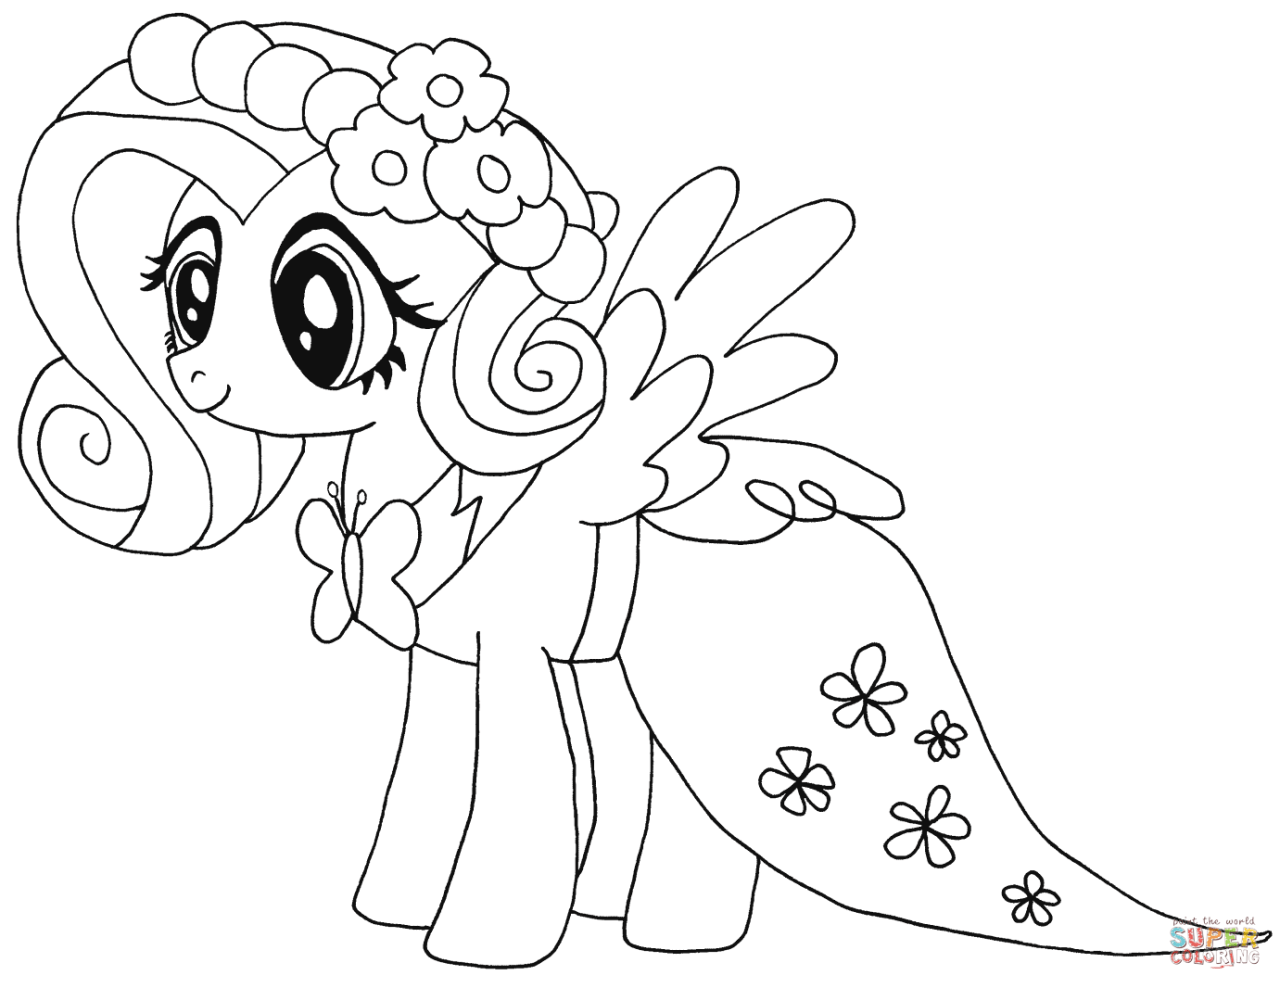 Ausmalbilder My Little Pony Equestria : My Little Pony Fluttershy Para Colorir My Little Pony Pinterest